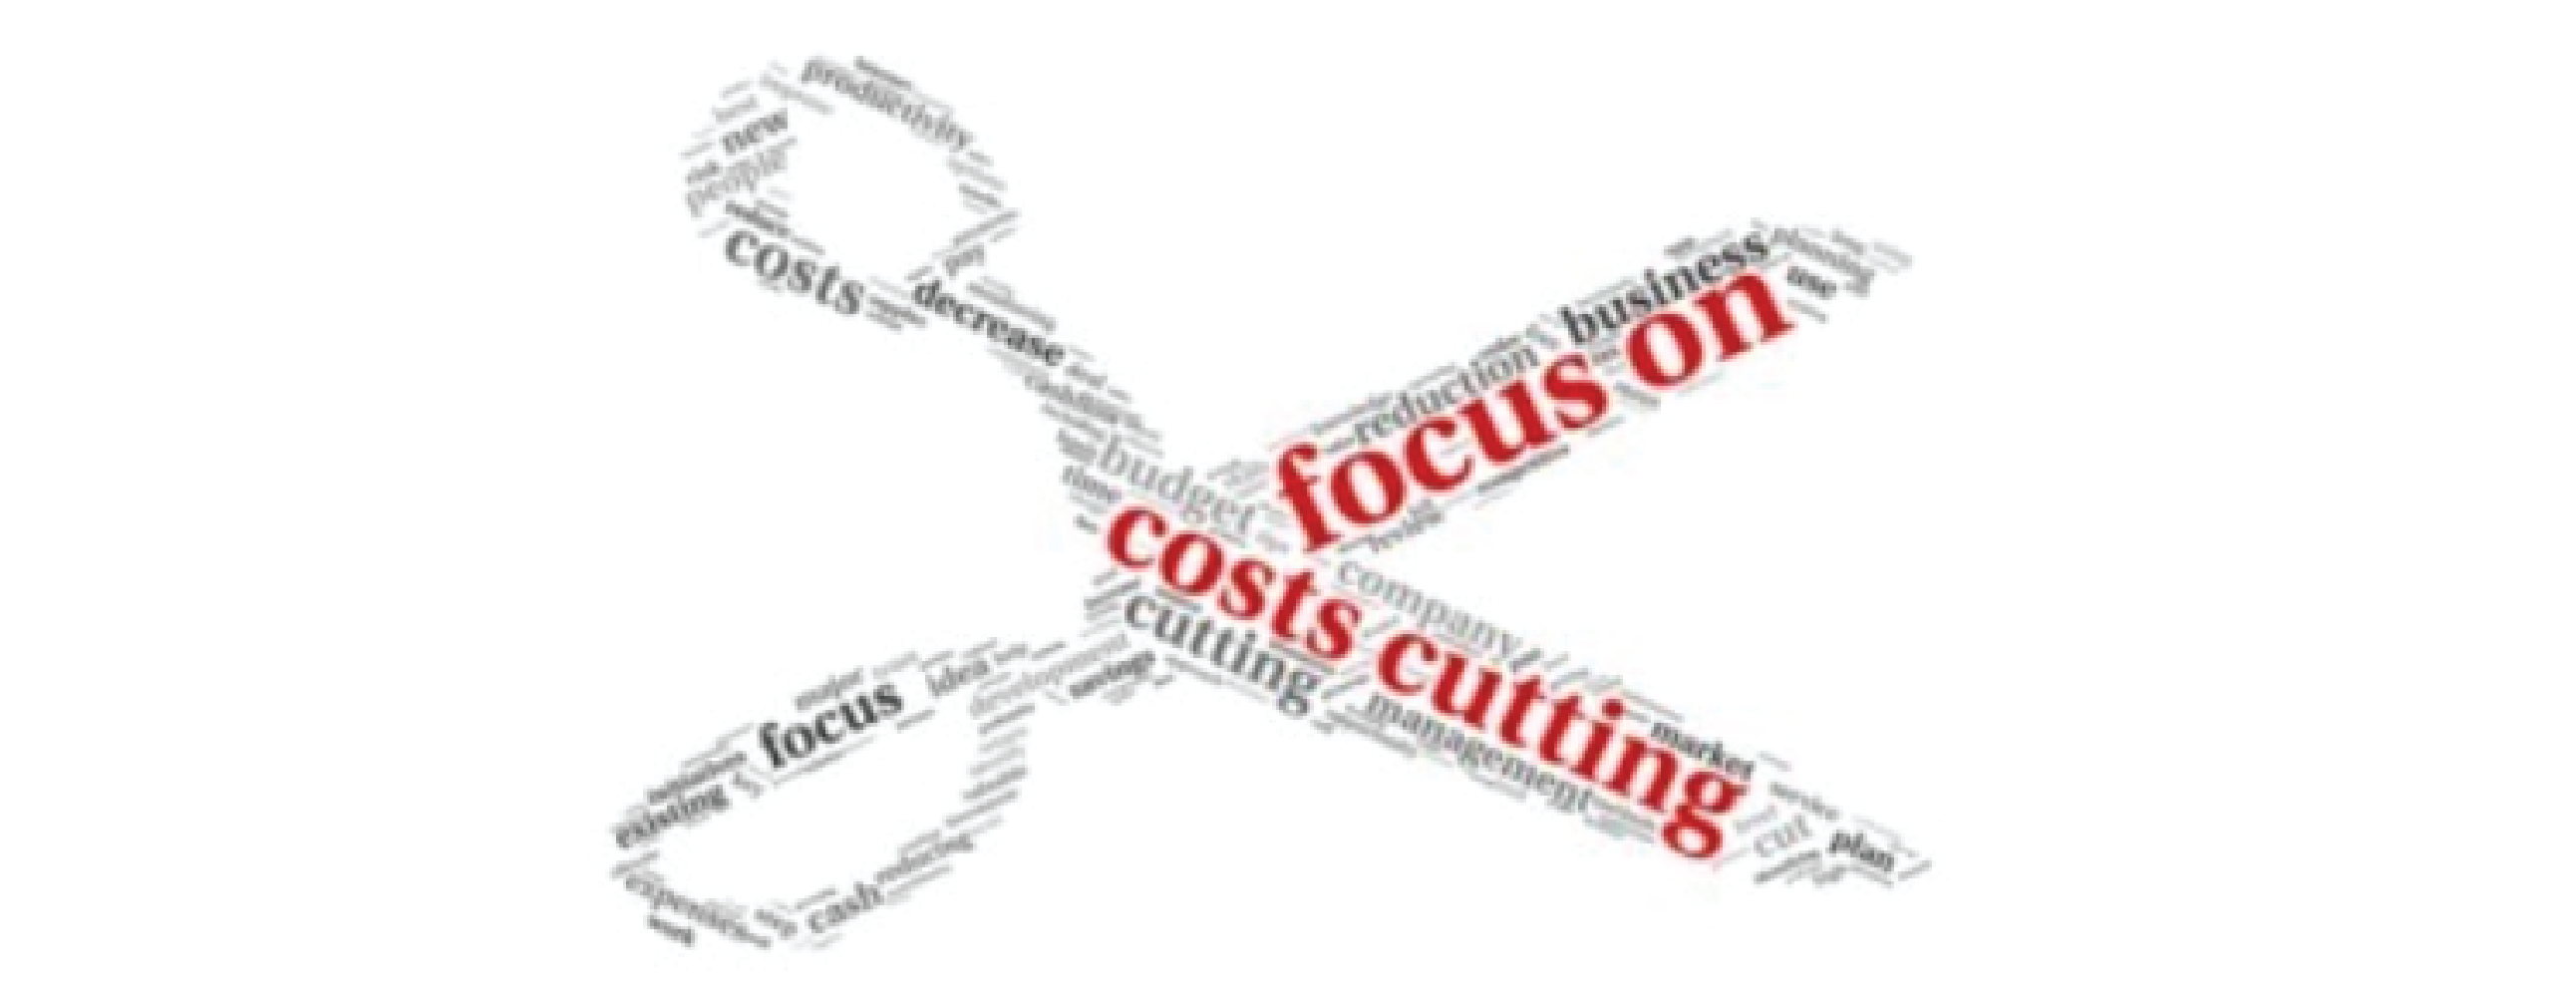 A Smarter Way to Reduce Costs: Lower Operating Expenses